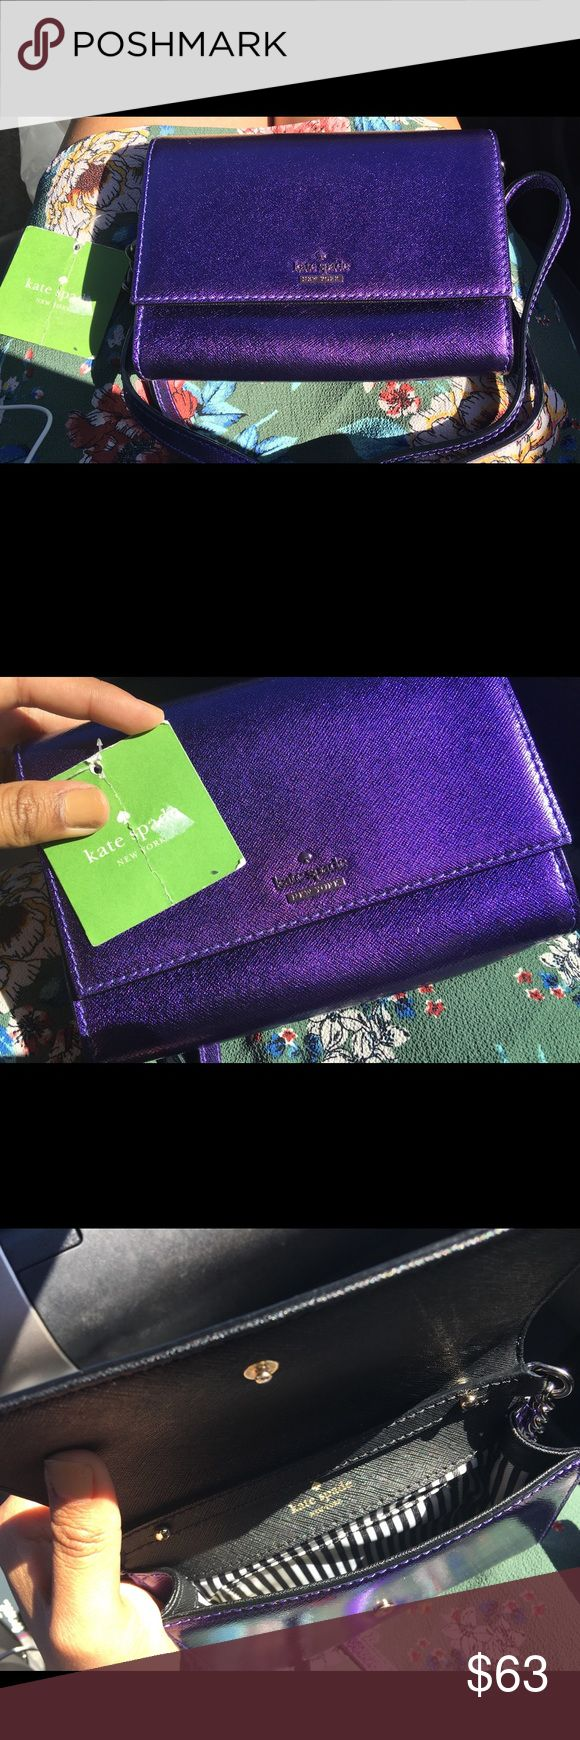 Kate Spade Metallic Crossbody Clutch New Kate Spade Cameron Street Metallic Cami Regal Plum Bag Crossbody Clutch. New with tags. kate spade Bags Crossbody Bags